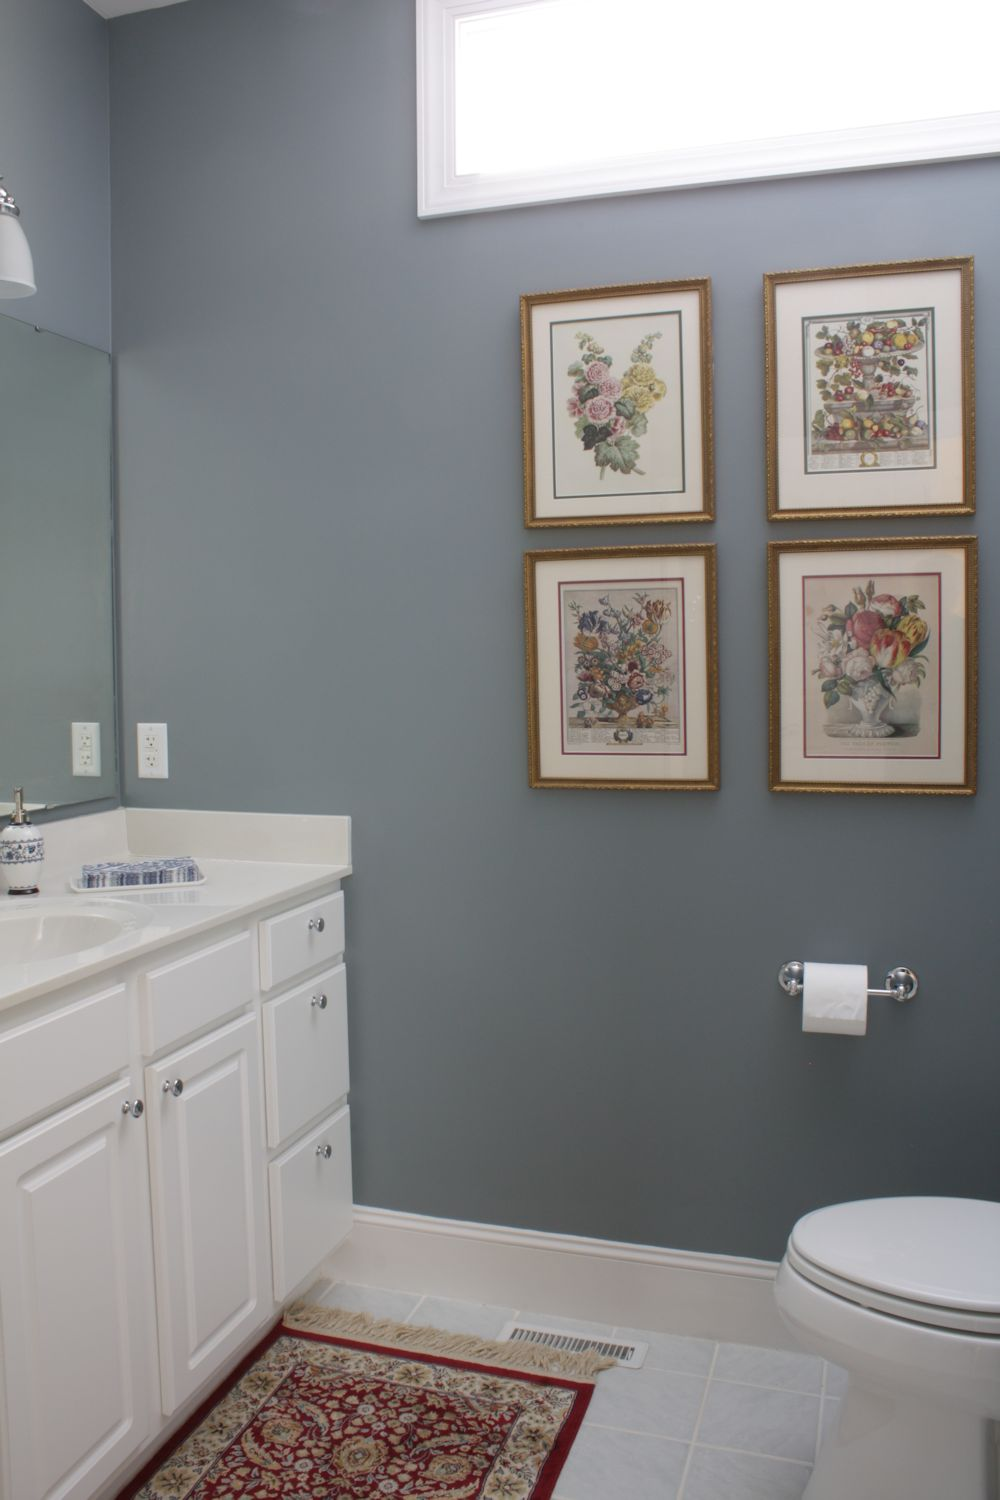 Where To Buy Olympic Bath And Kitchen Paint